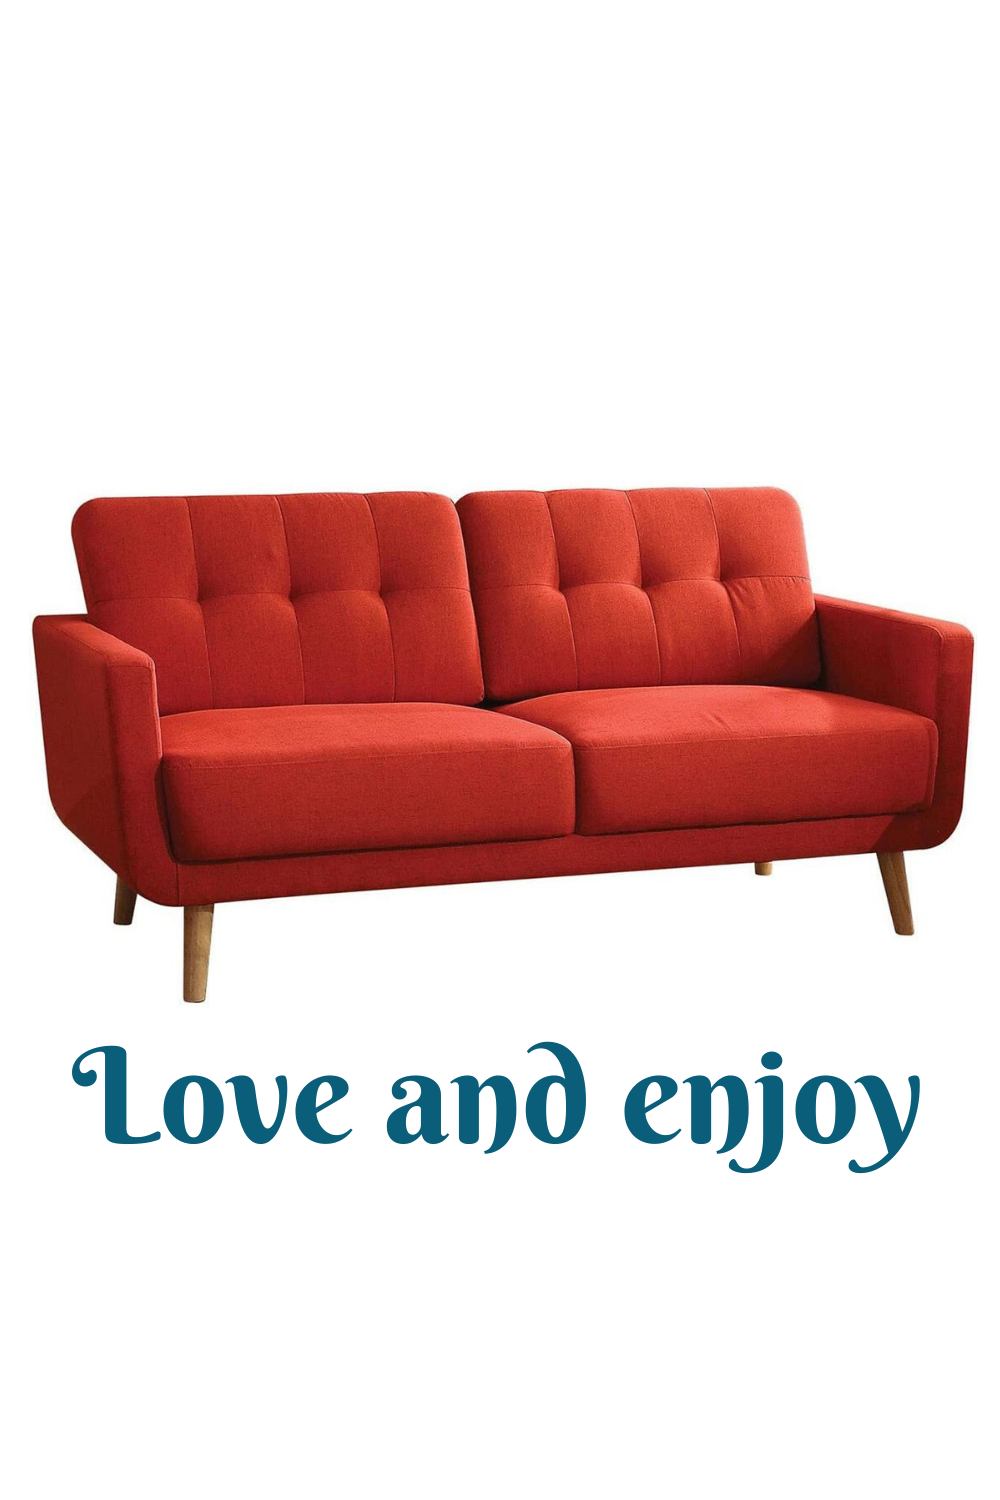 Major-Q contemporary sofa set includes a sofa and a love seat. it intersects the midcentury and today. This collection features selected linen fabric upholstery, tufted Buttonless backrest and natural wooden tapered legs. Bring home this collection, you will enjoy the comfortable seating and stylish look. #decorativesofa #luxurysofa #sofainspiration #bestsofa #coolsofa #sofaideas #sofastyles #lovesofa #sofadecoration